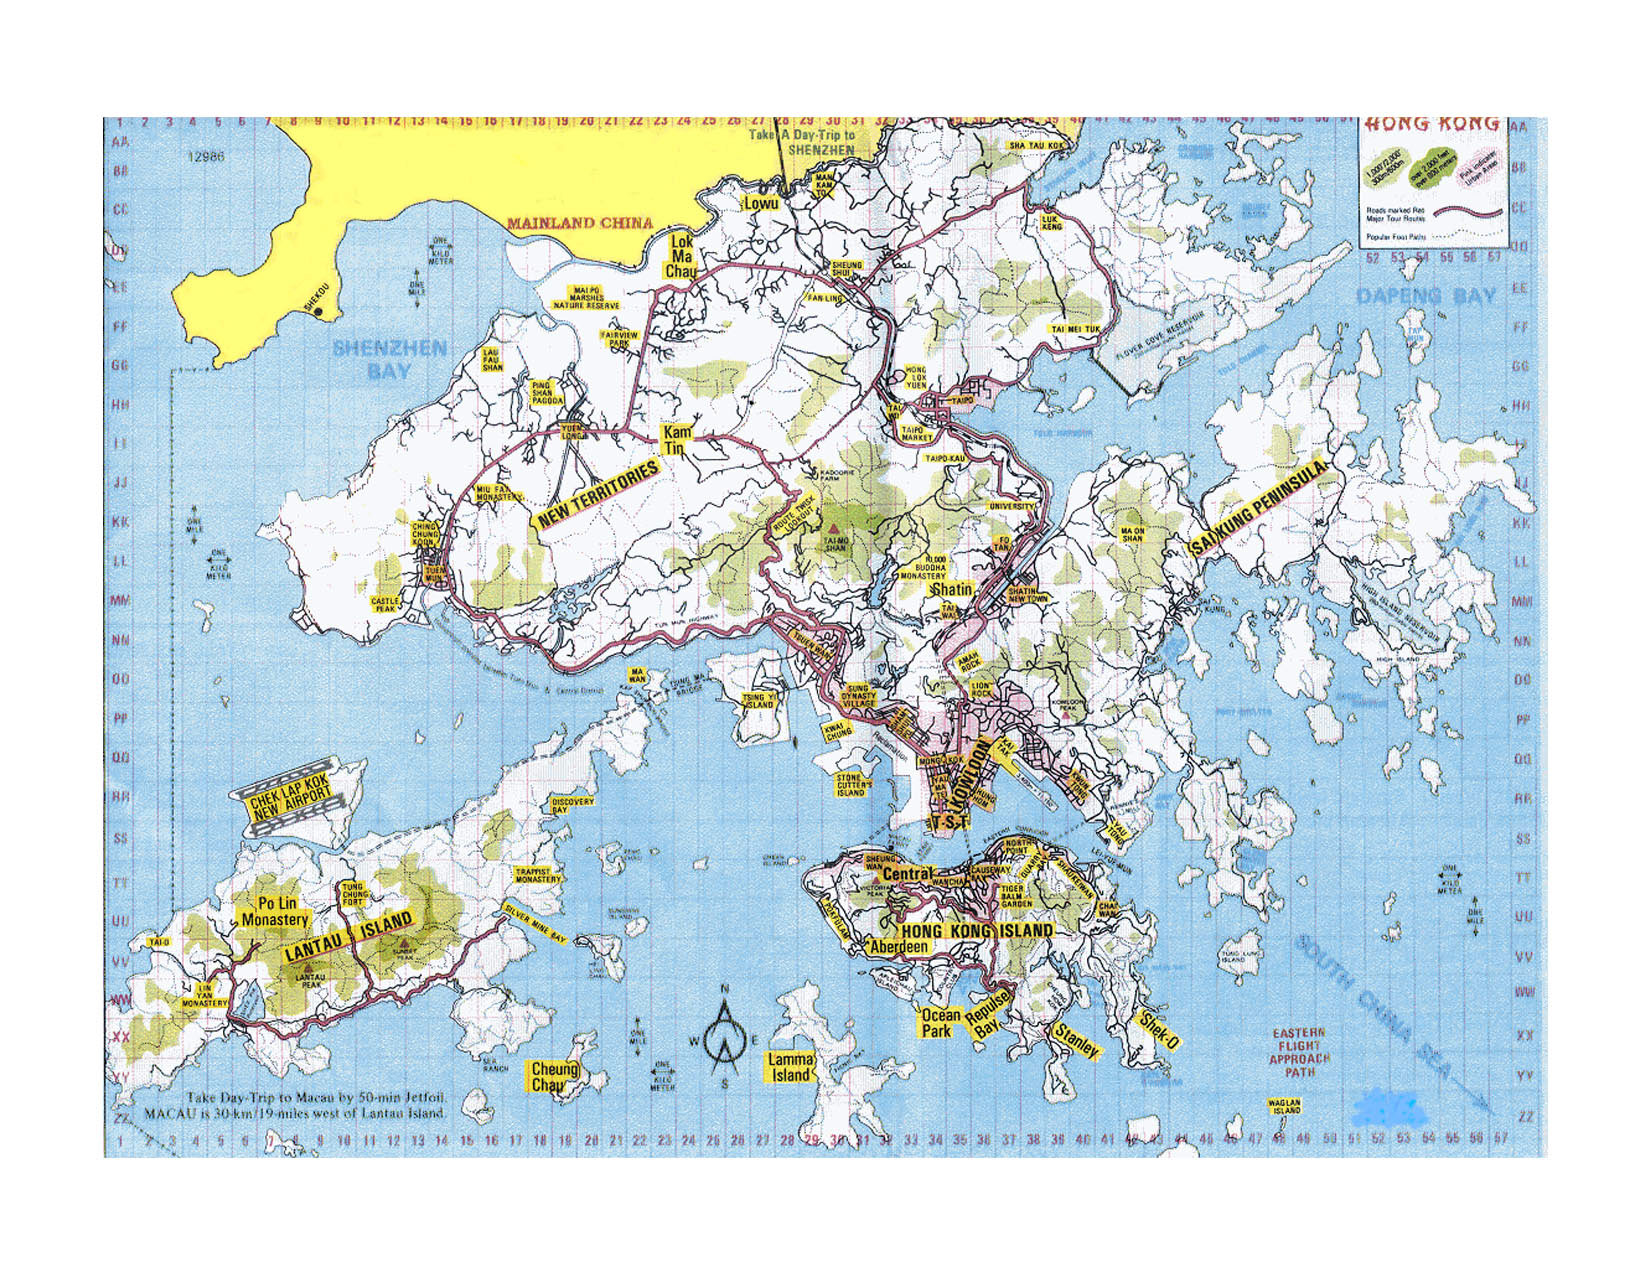 Maps of Hong Kong | Detailed map of Hong Kong in English | Tourist Detailed Topo Maps on